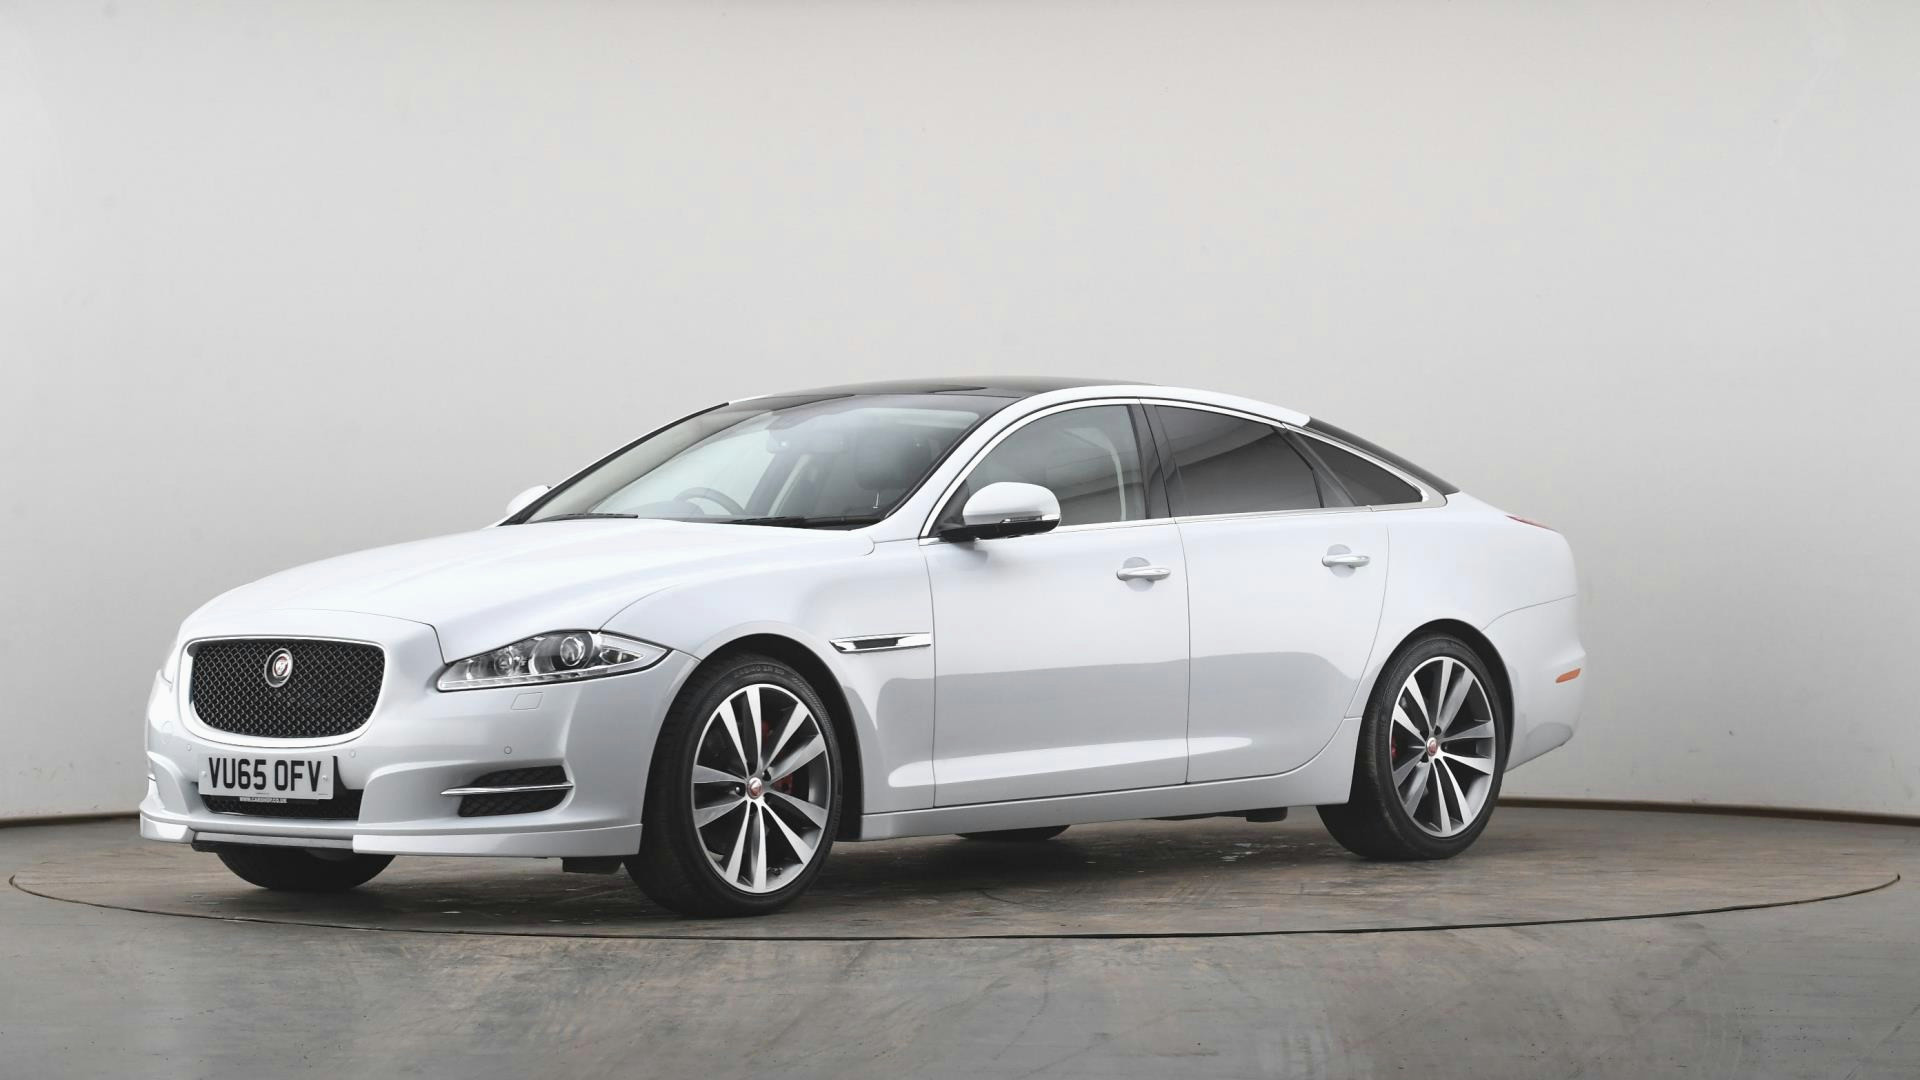 cars that are easy to draw amazing white jaguar car car wallpaper hd of cars that